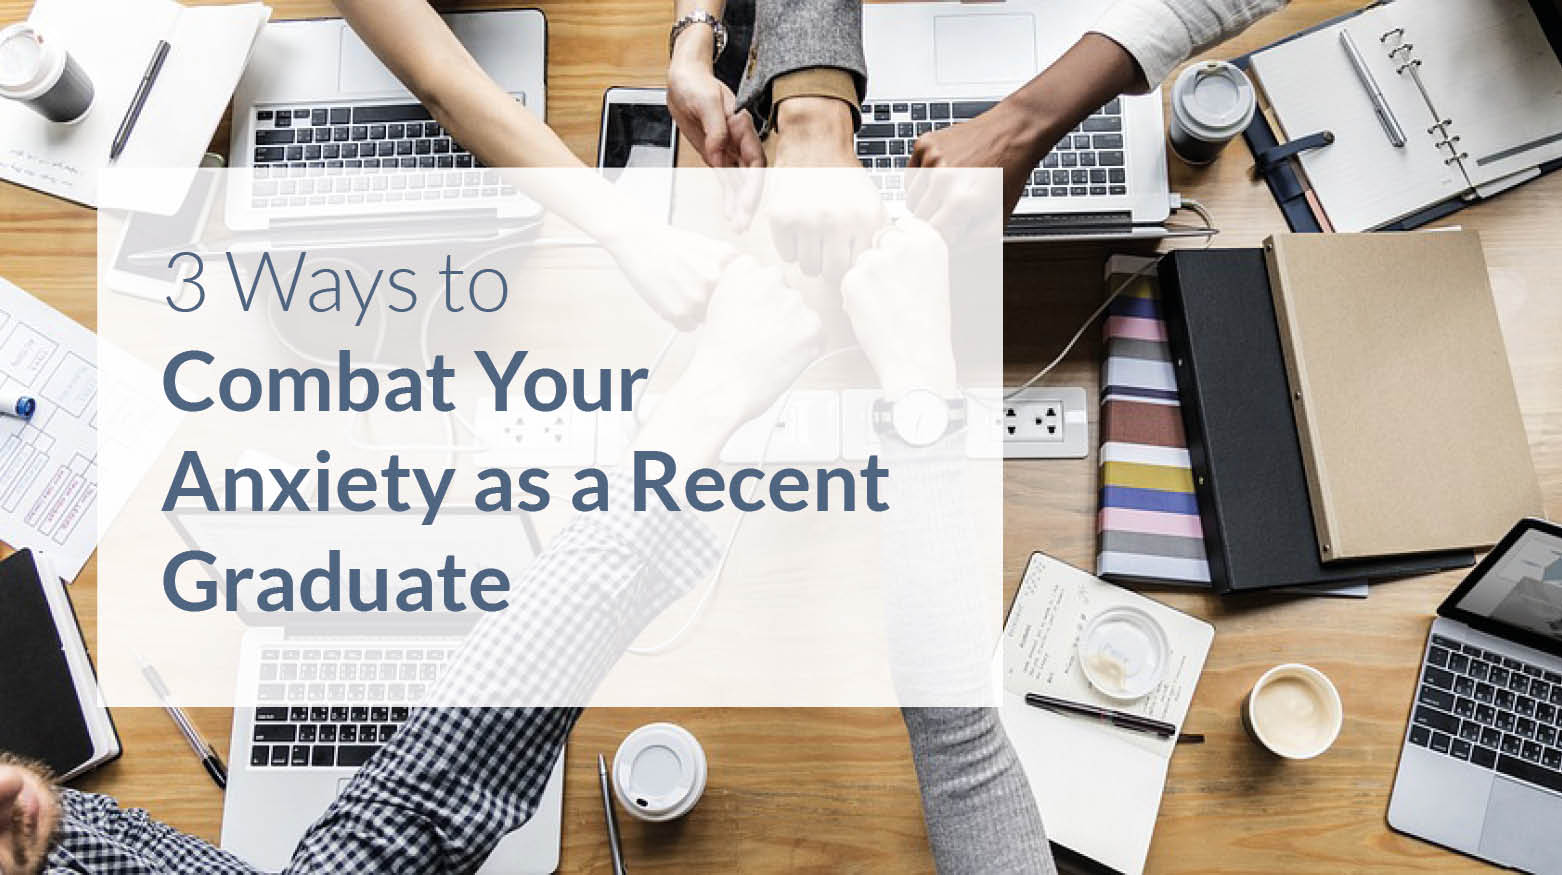 3 Ways to Combat Your Anxiety as a Recent Graduate